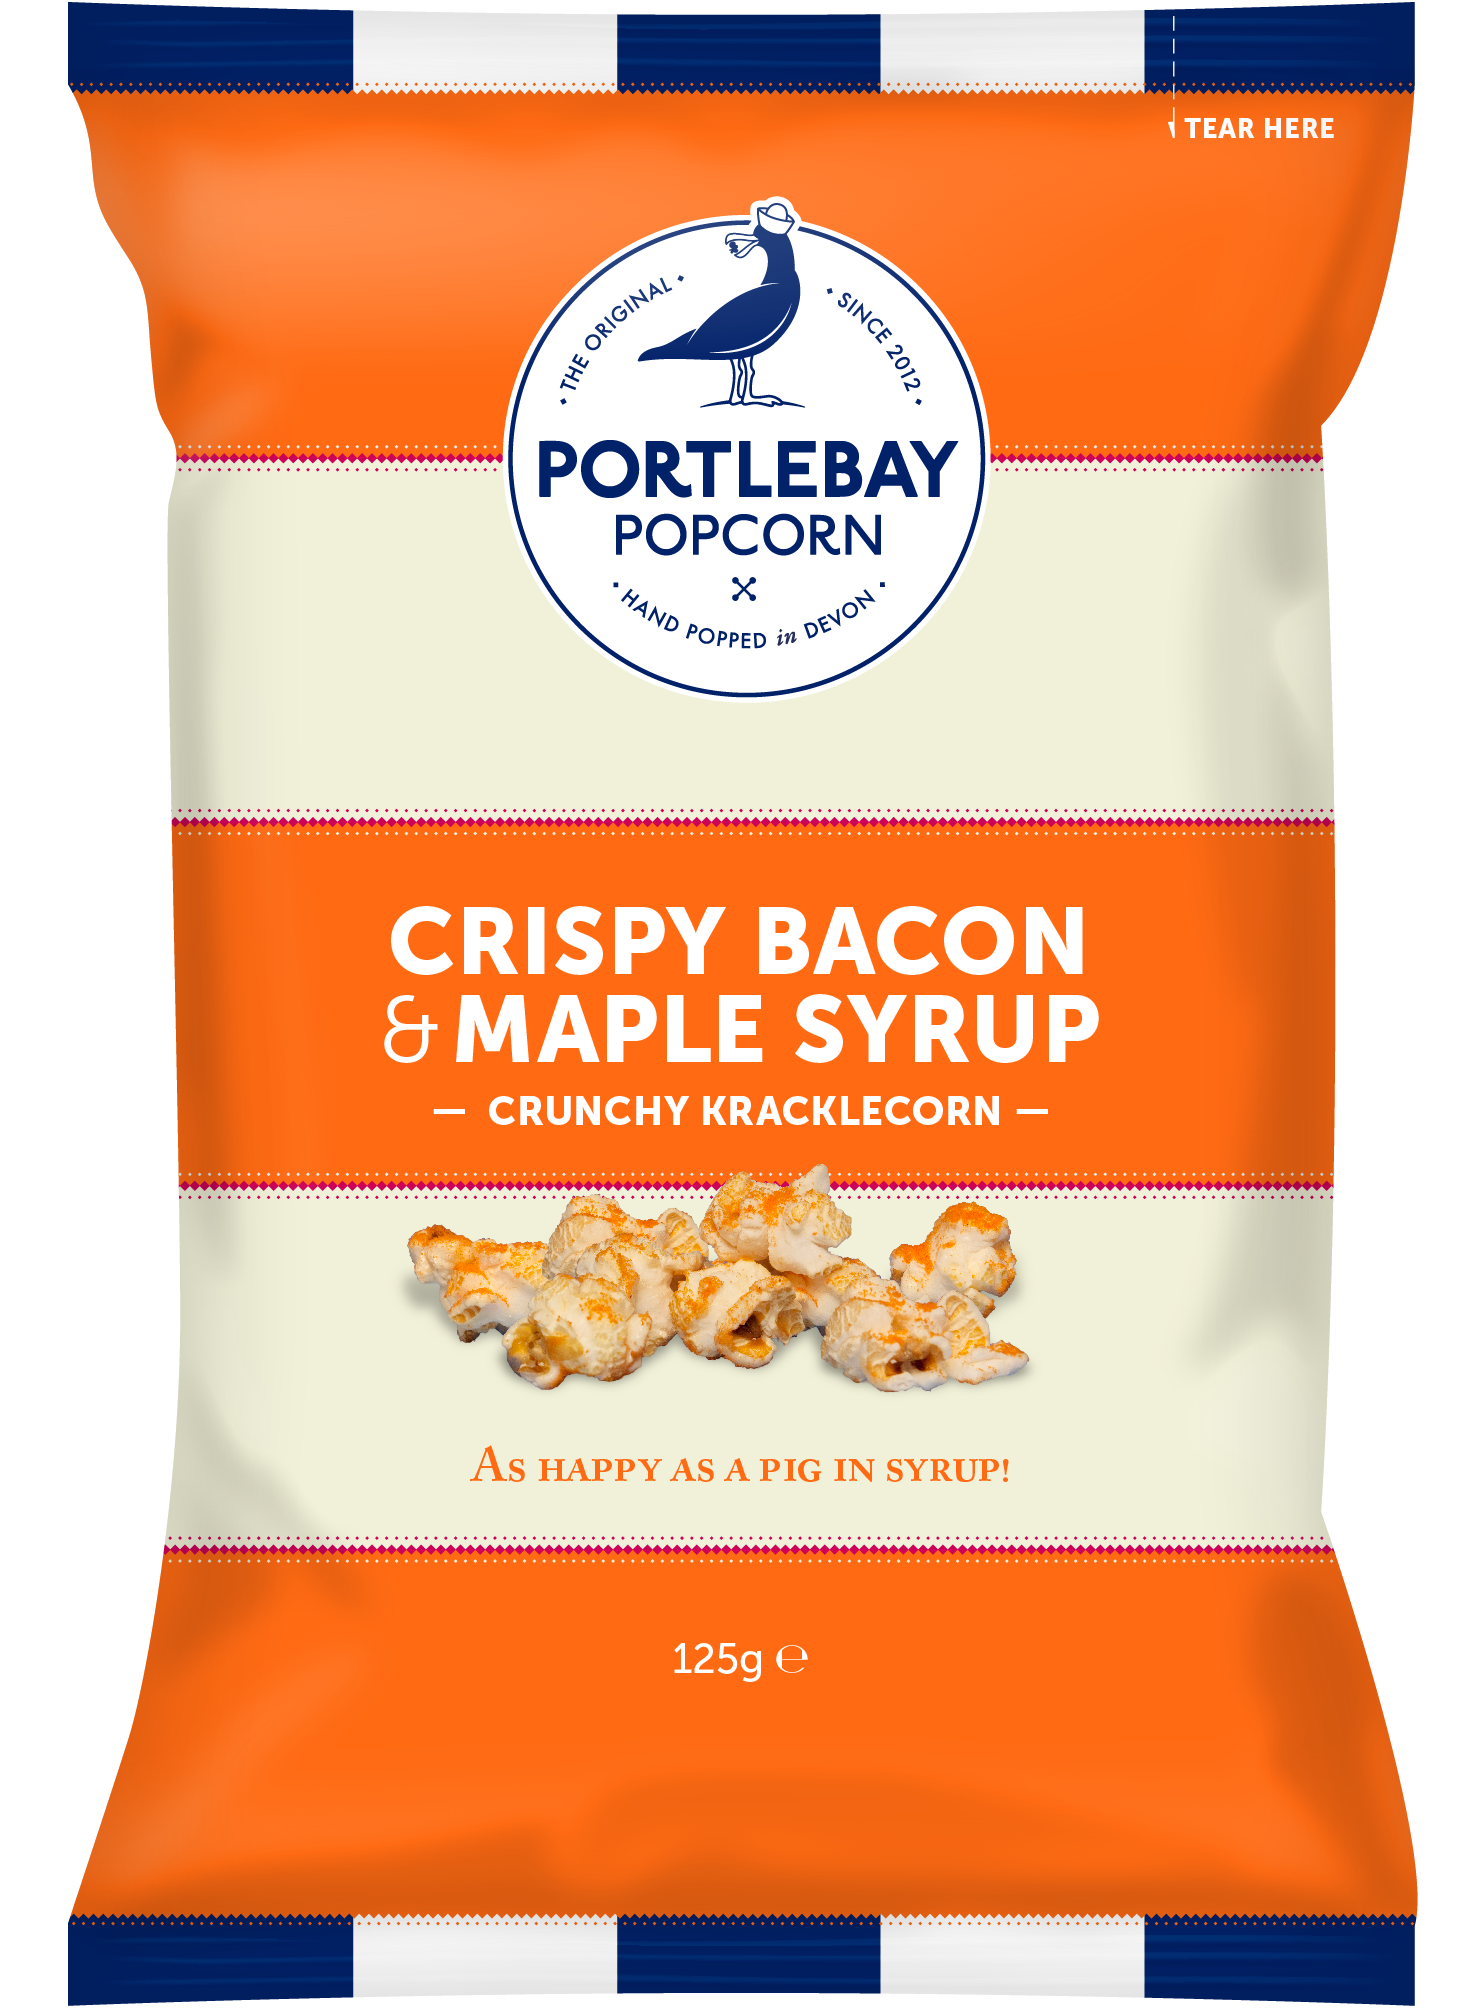 Crispy Bacon & Maple Syrup